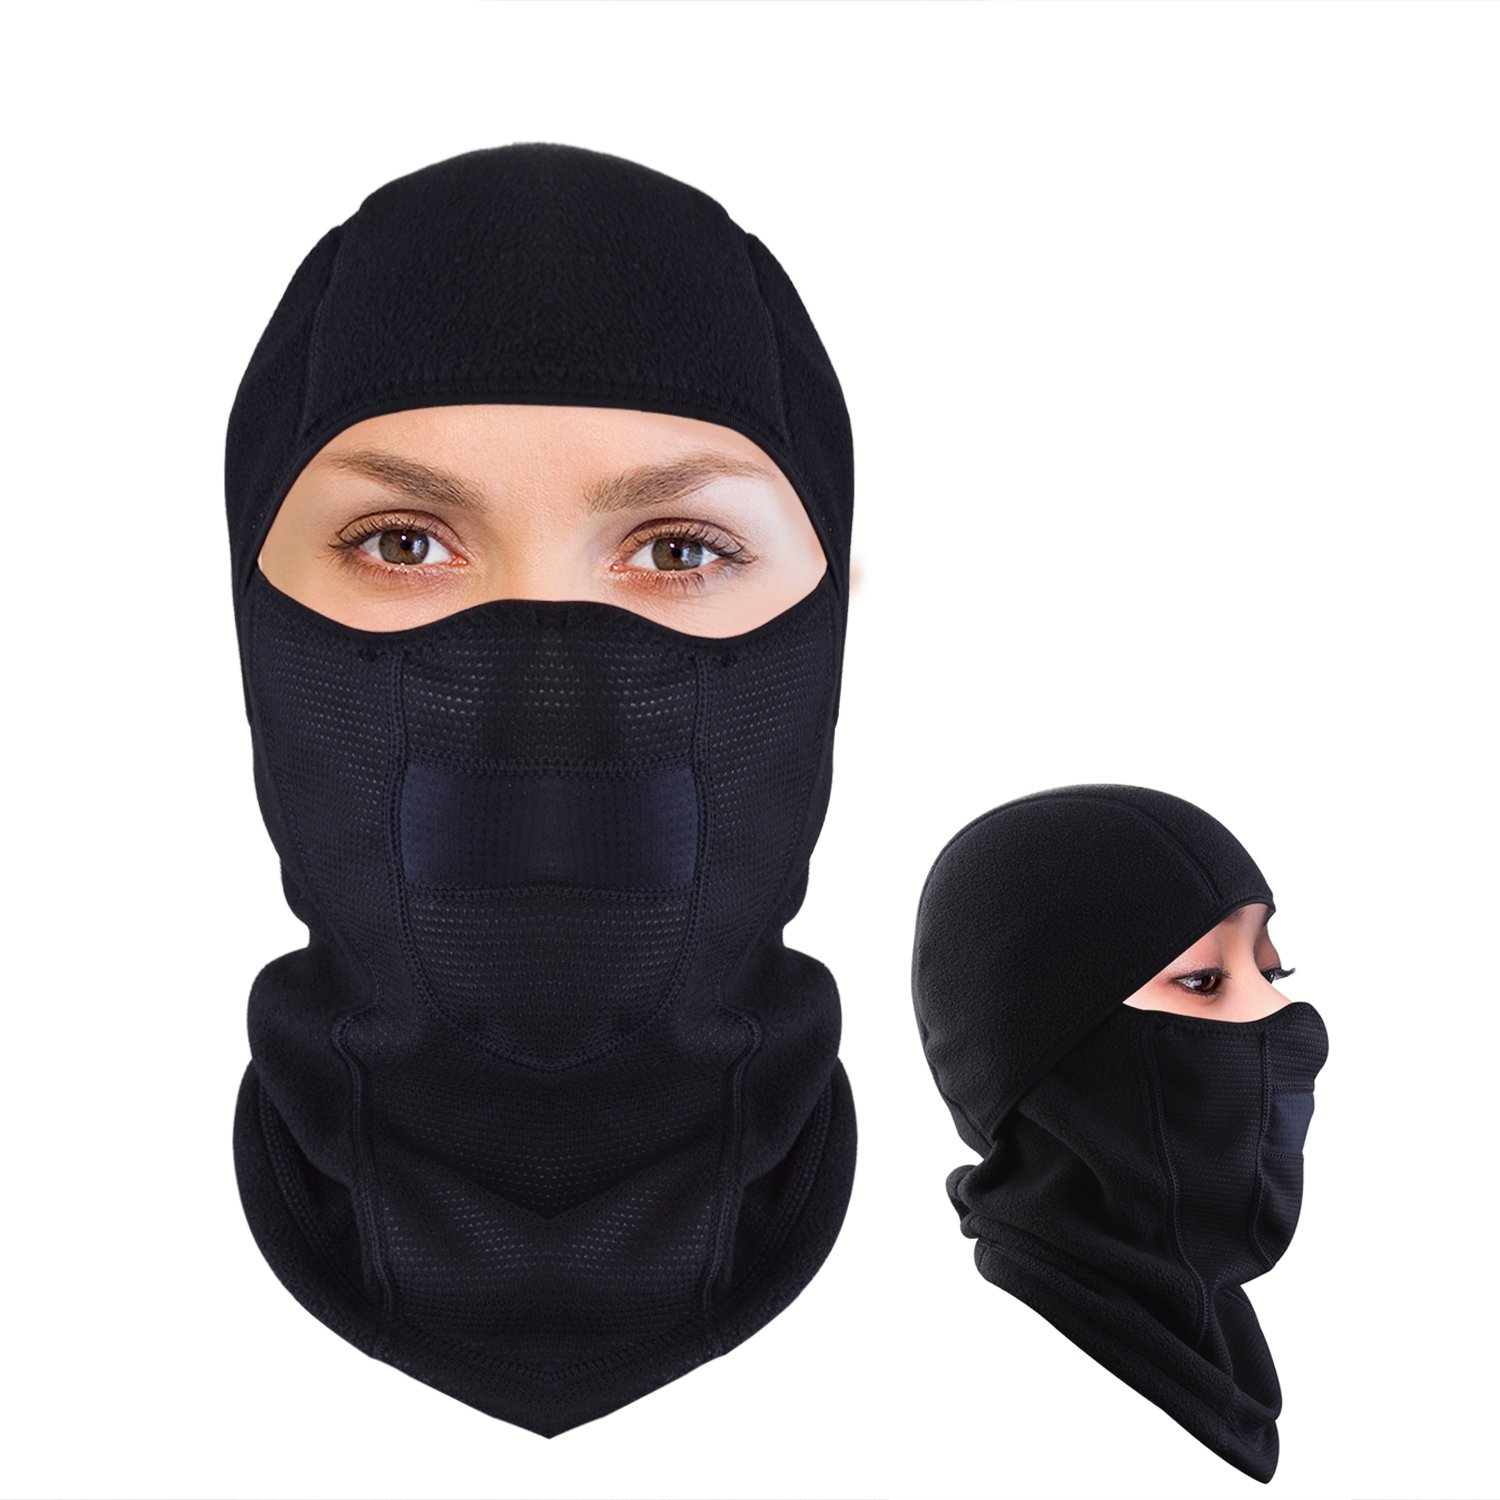 JMFONE Balaclava Ski Mask Windproof Full Face Mask and Neck Warmer Cold Weather Winter Motorcycle Running Tactical Balaclava Hood Polyester Fleece for Women Men Youth jmfone00011